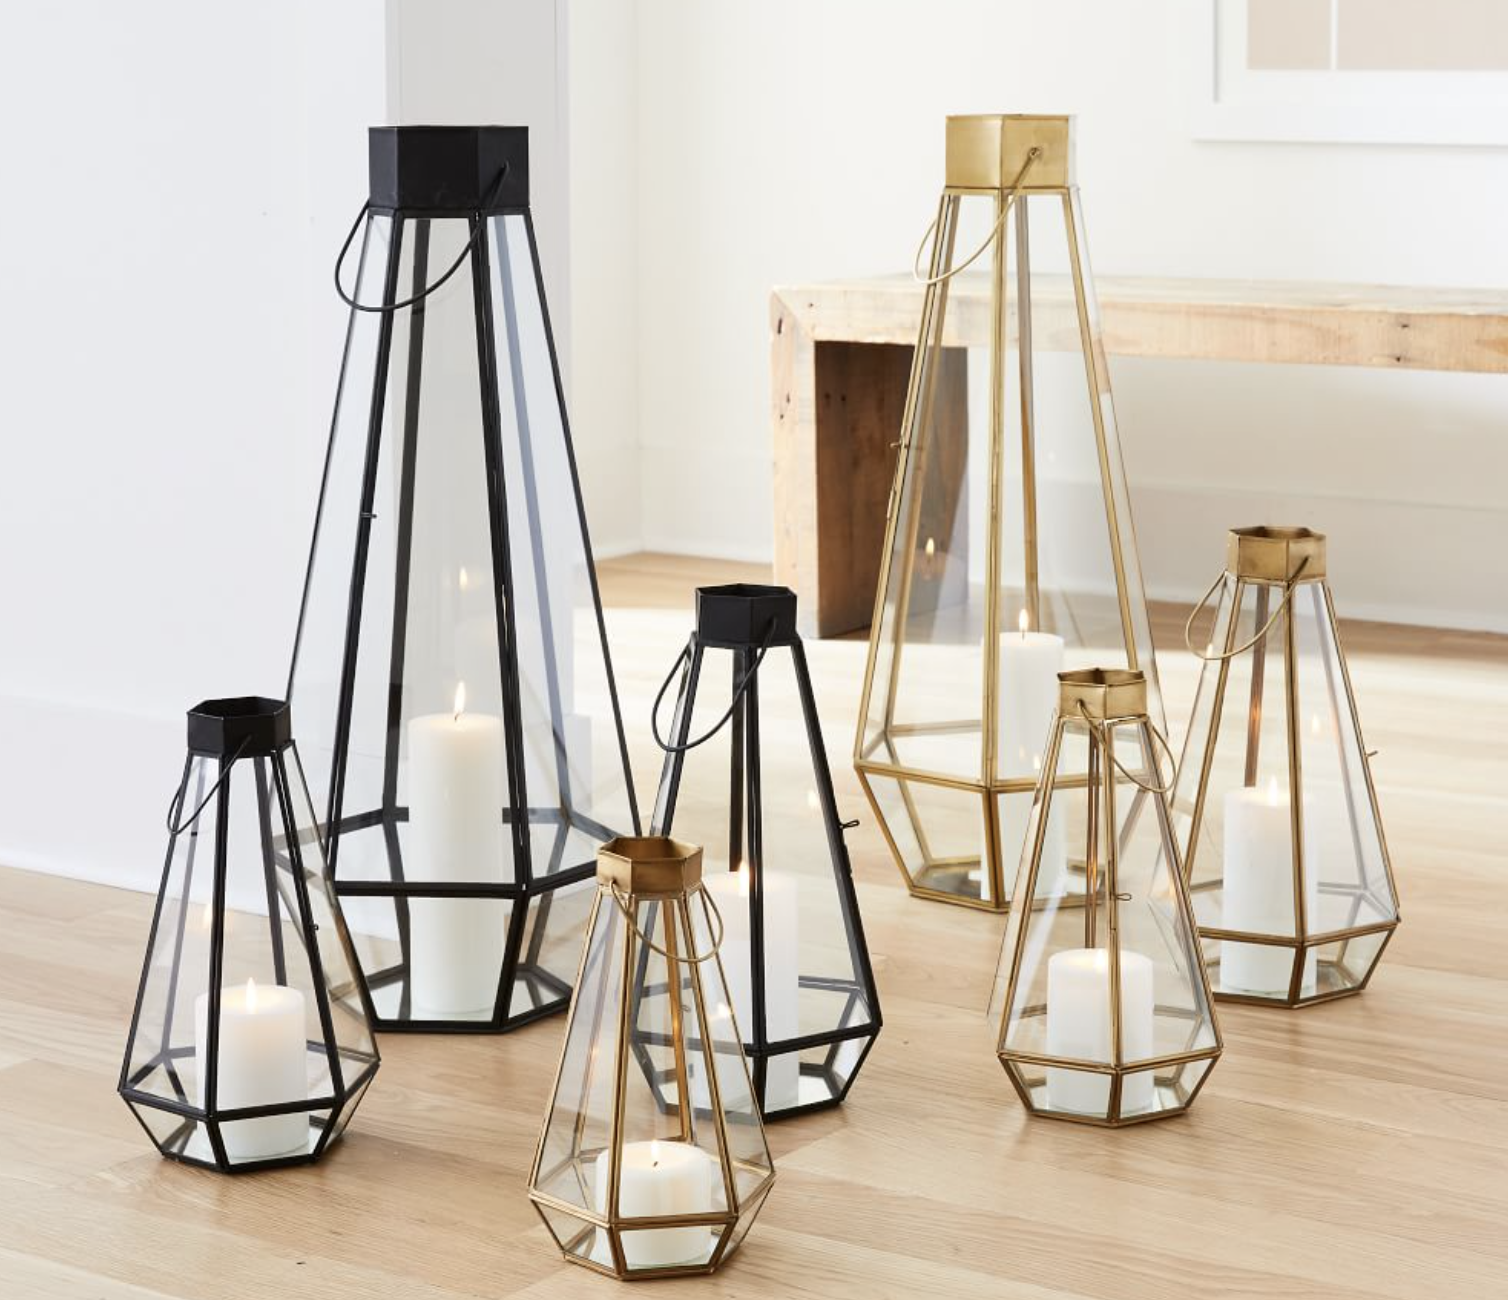 faceted glass & metal lanterns for wedding table arrangements